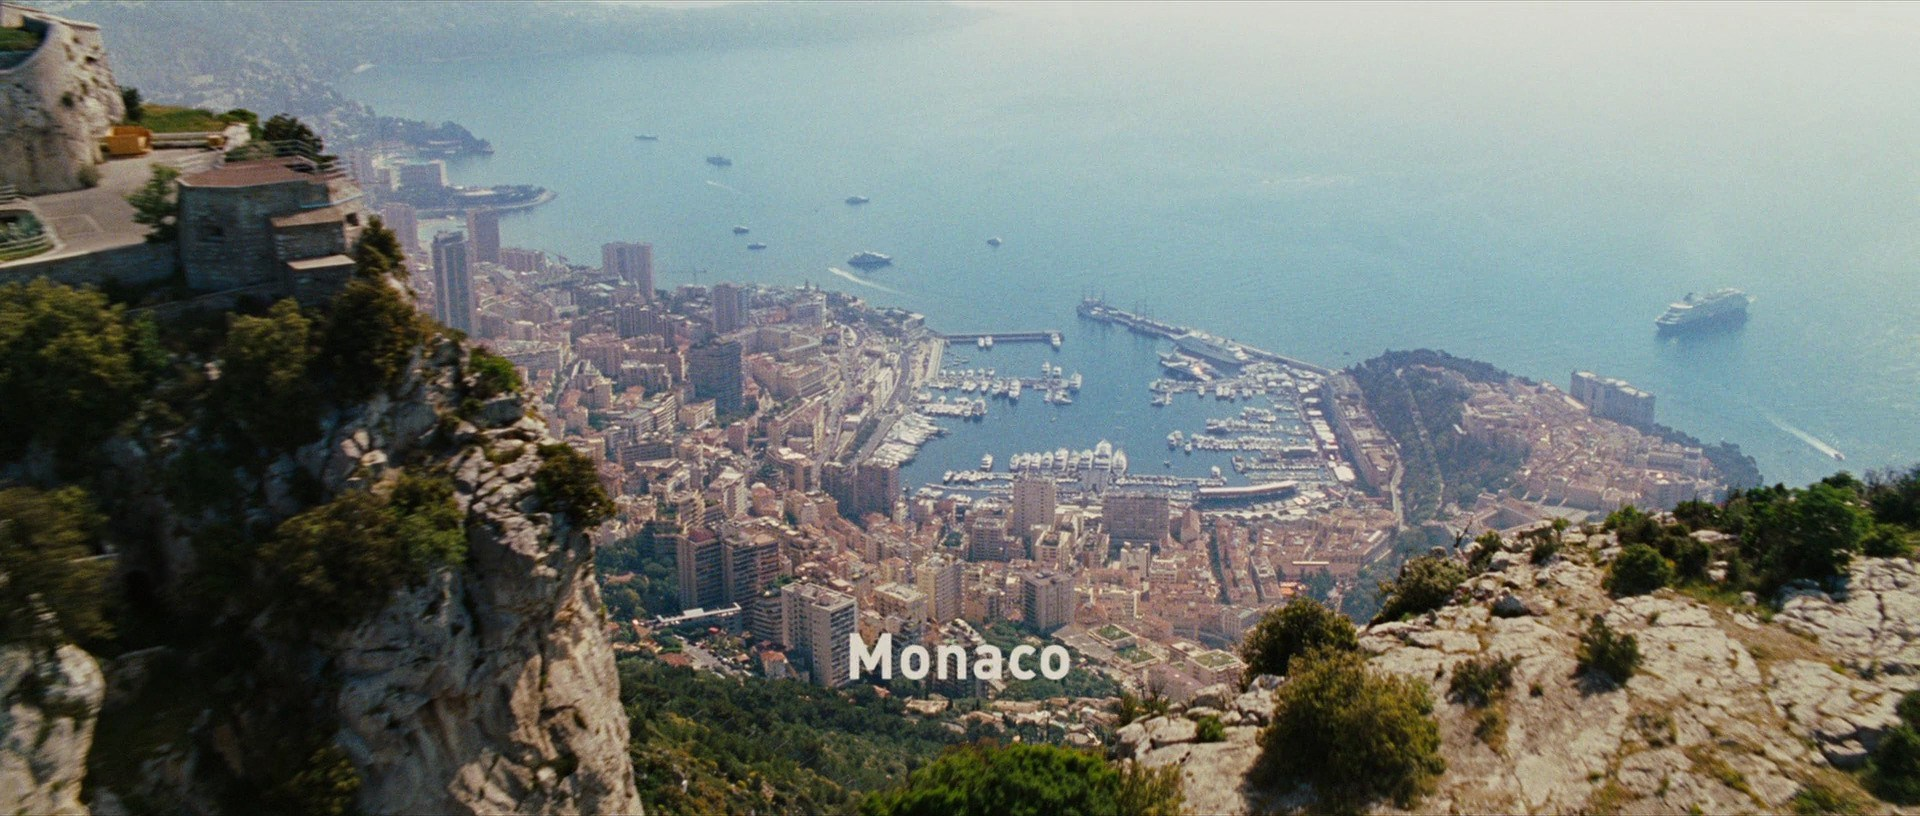 Iron Man 2 Filming Locations | Monaco